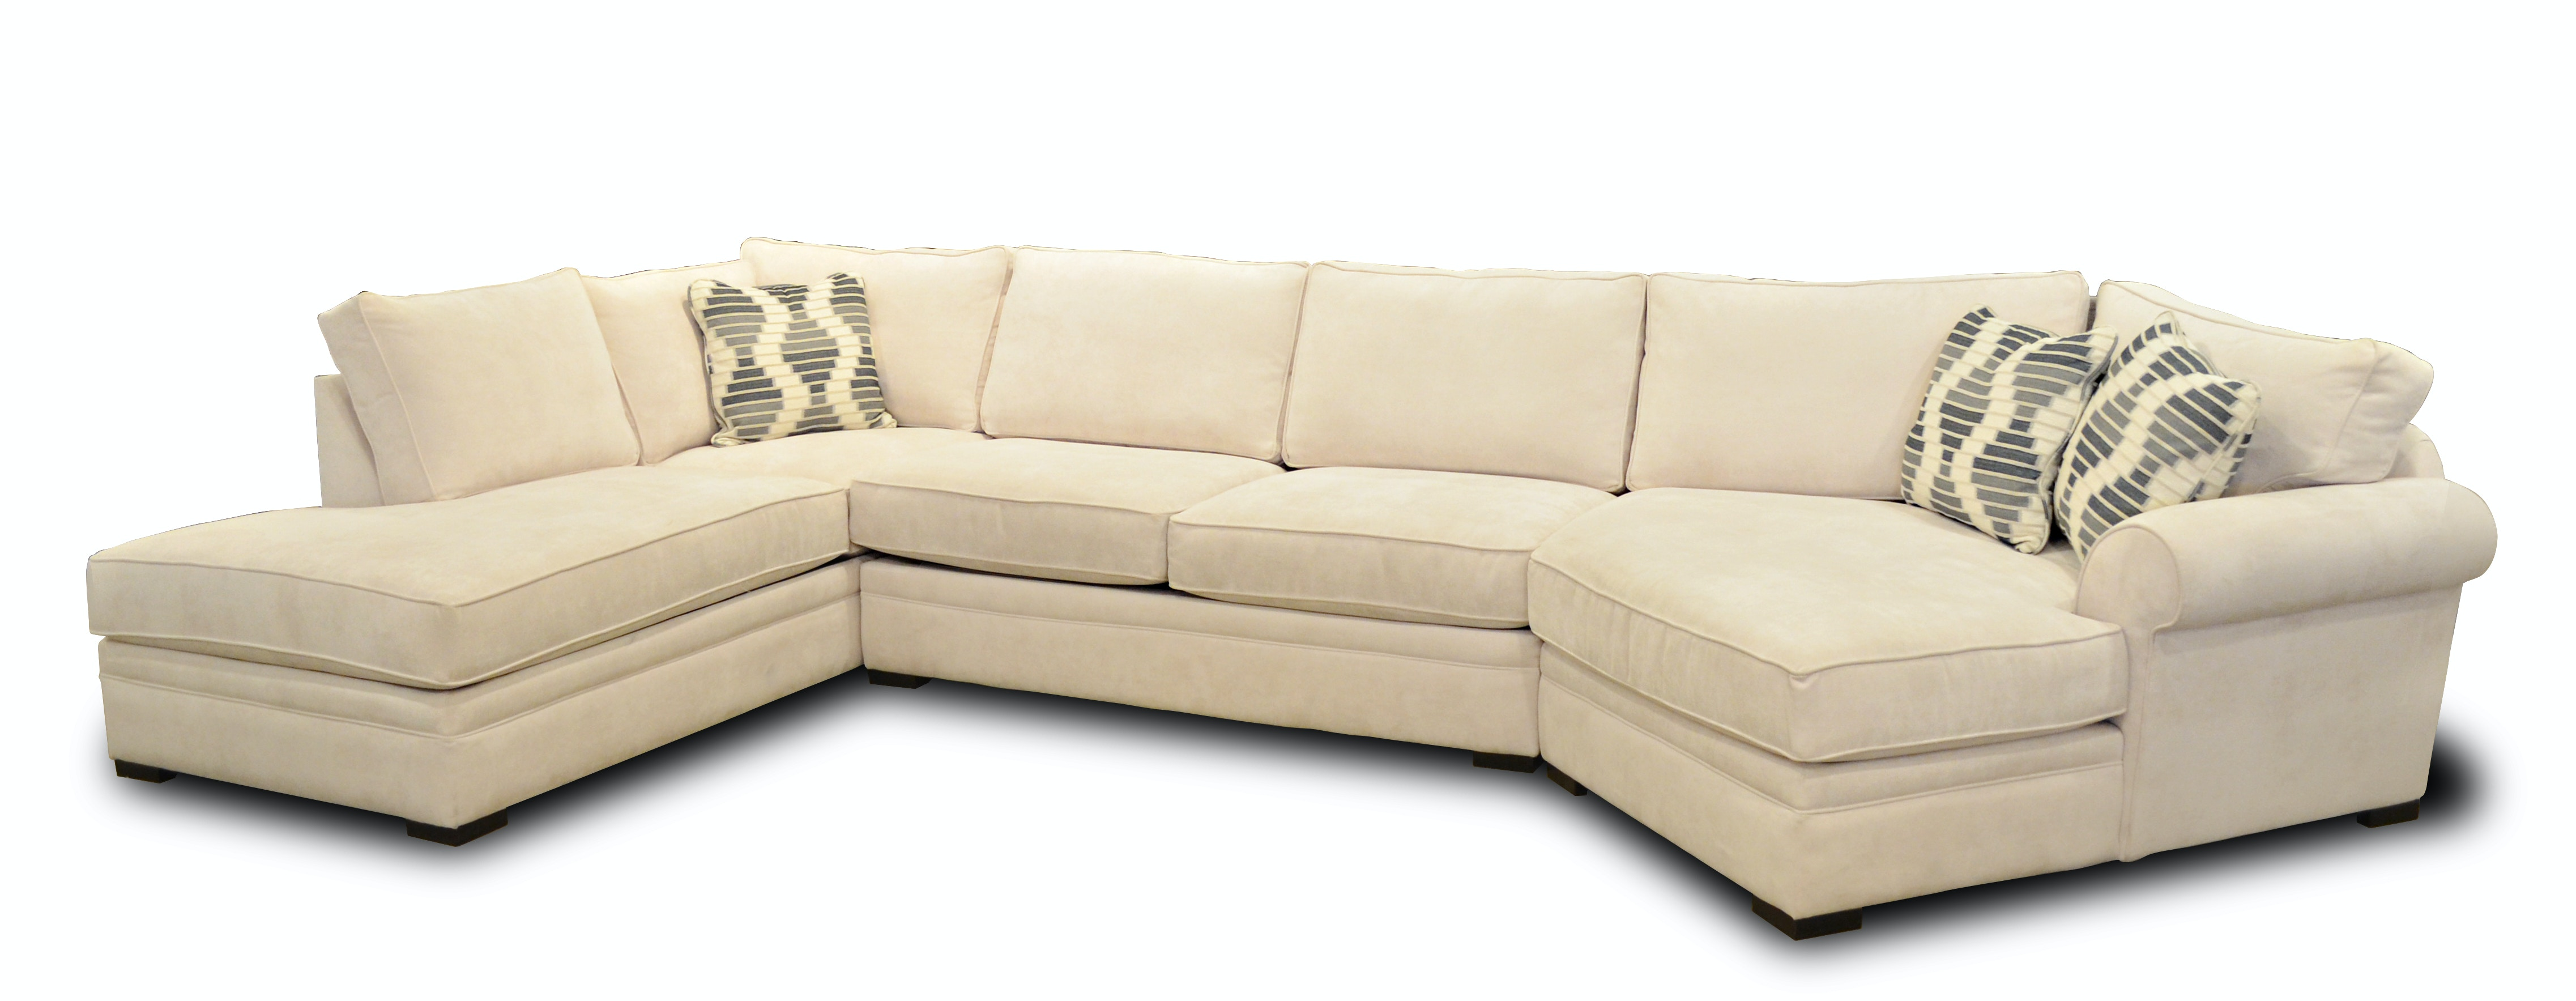 G66089  sc 1 st  Kittleu0027s Furniture : jonathan louis artemis sectional - Sectionals, Sofas & Couches